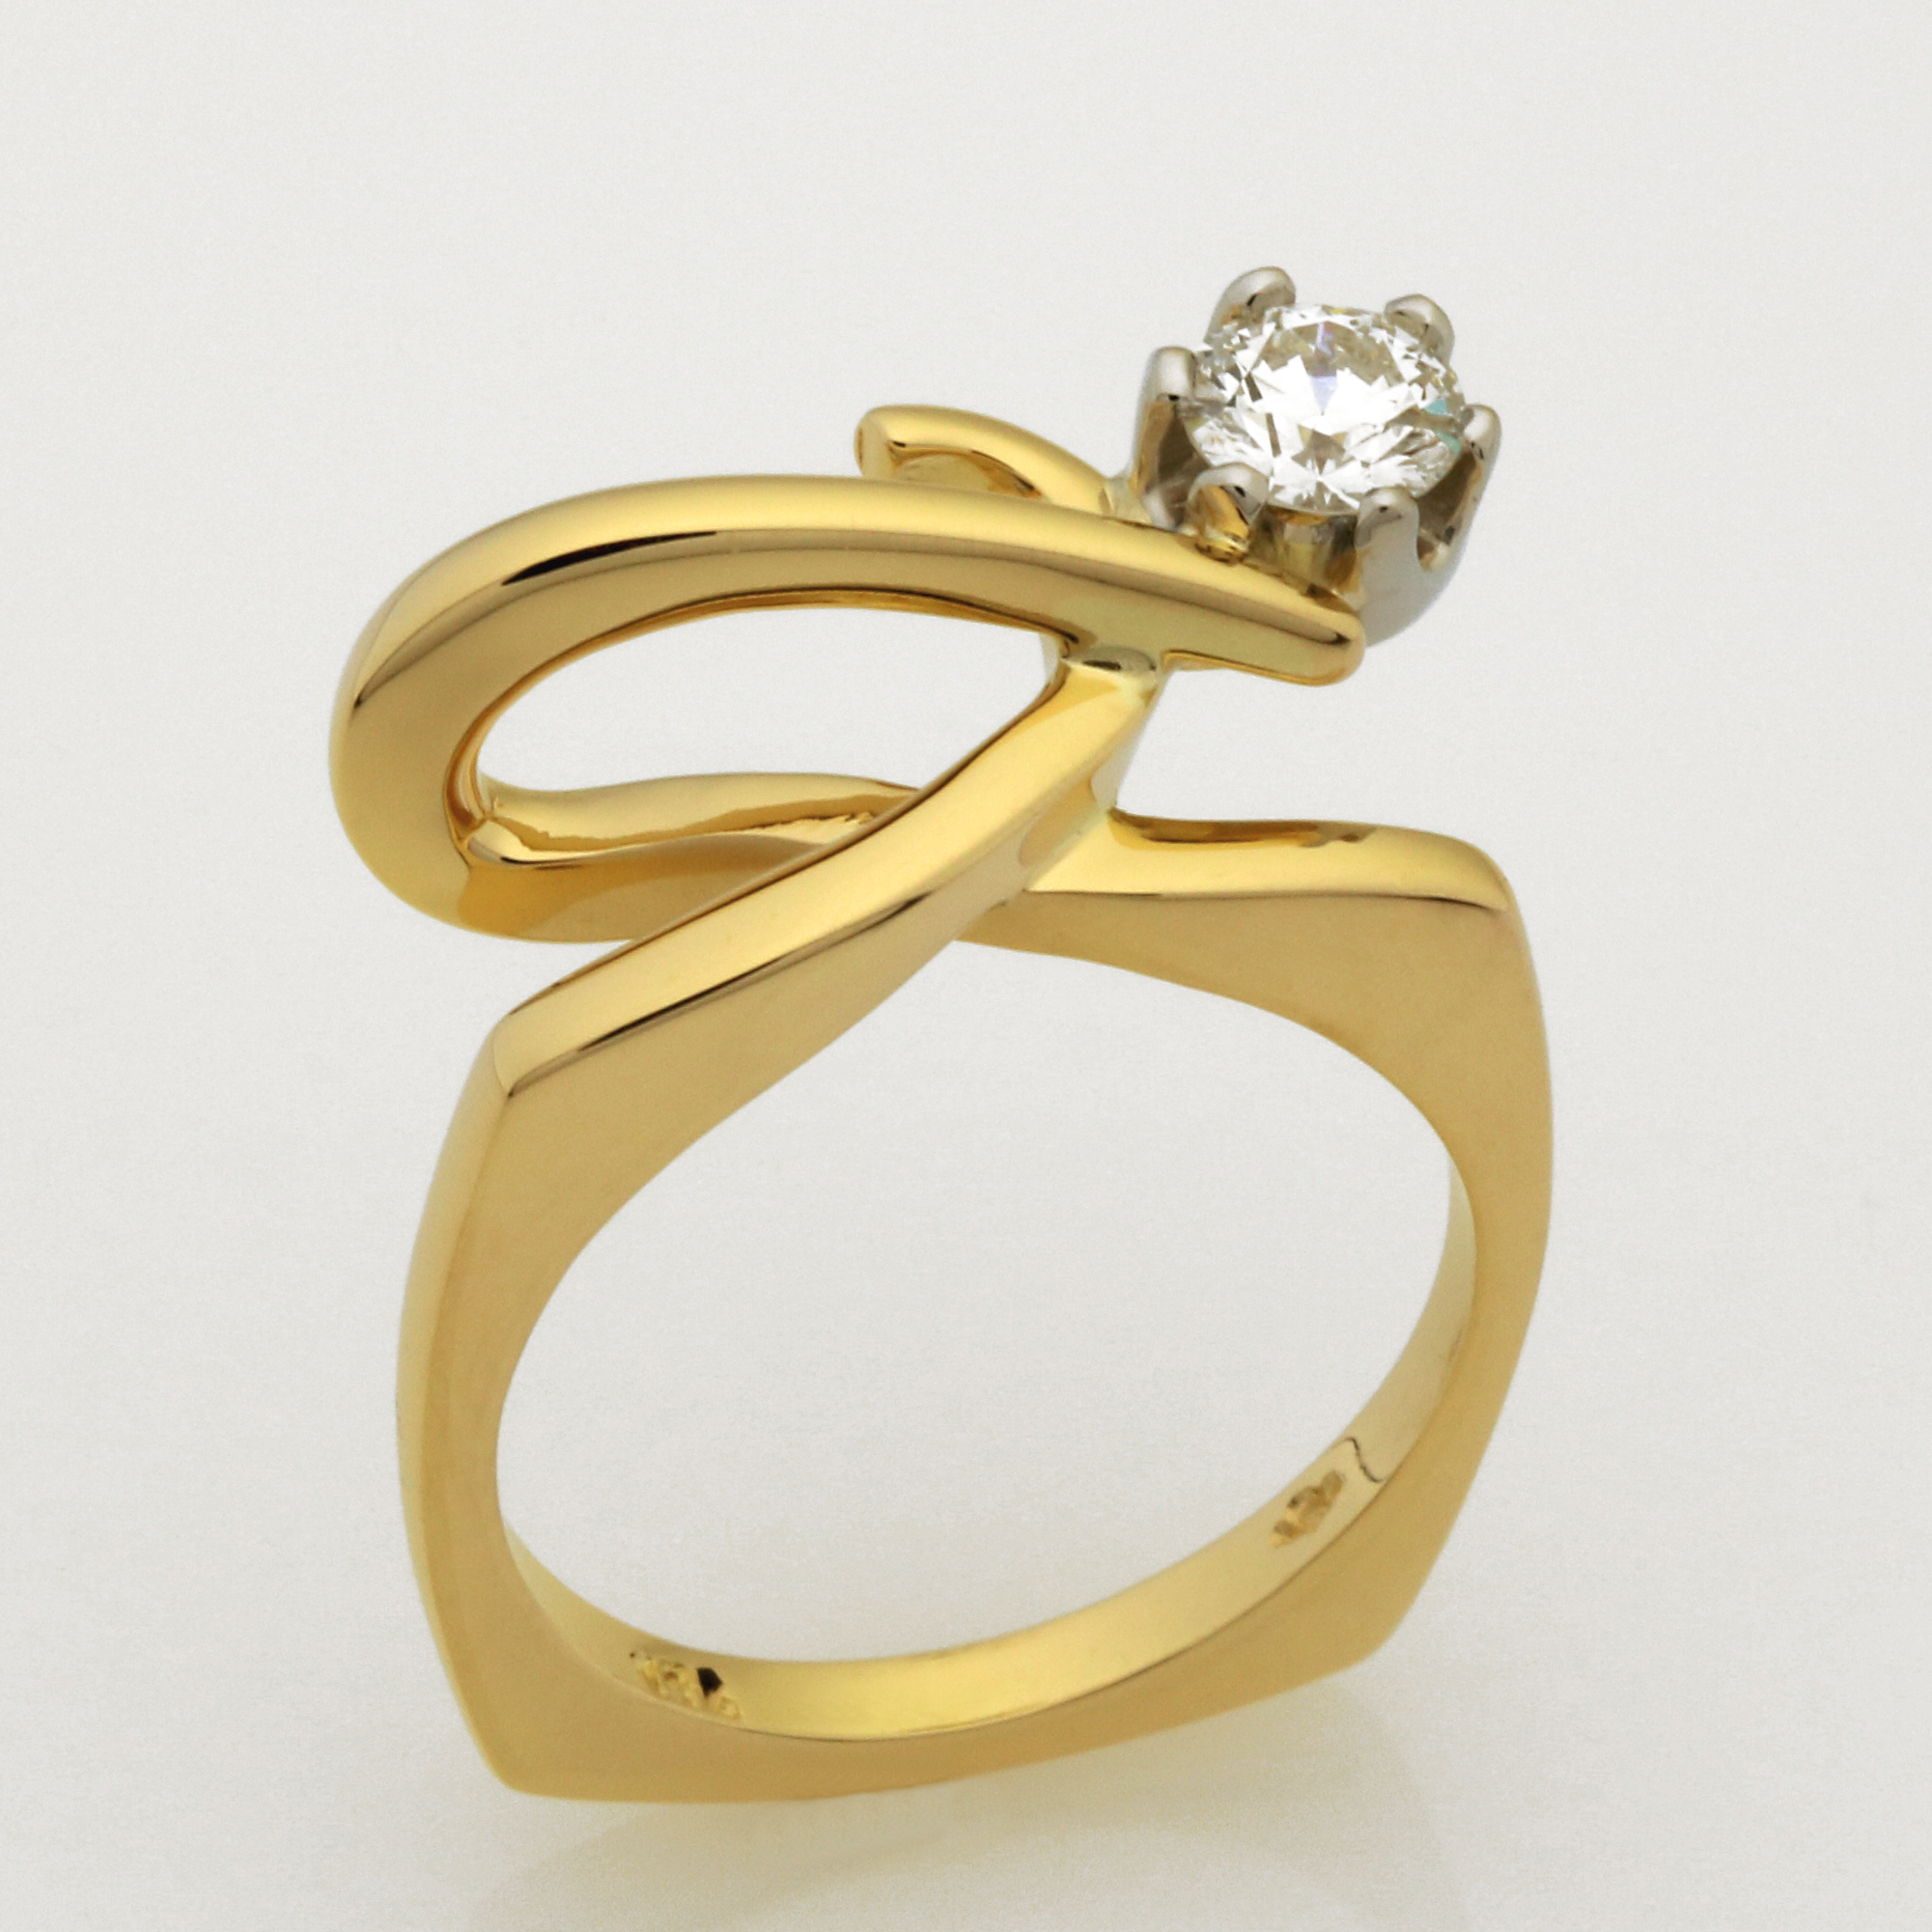 Handmade ladies 18ct yellow gold, Palladium set, 'EightStar' brilliant cut Diamond ring